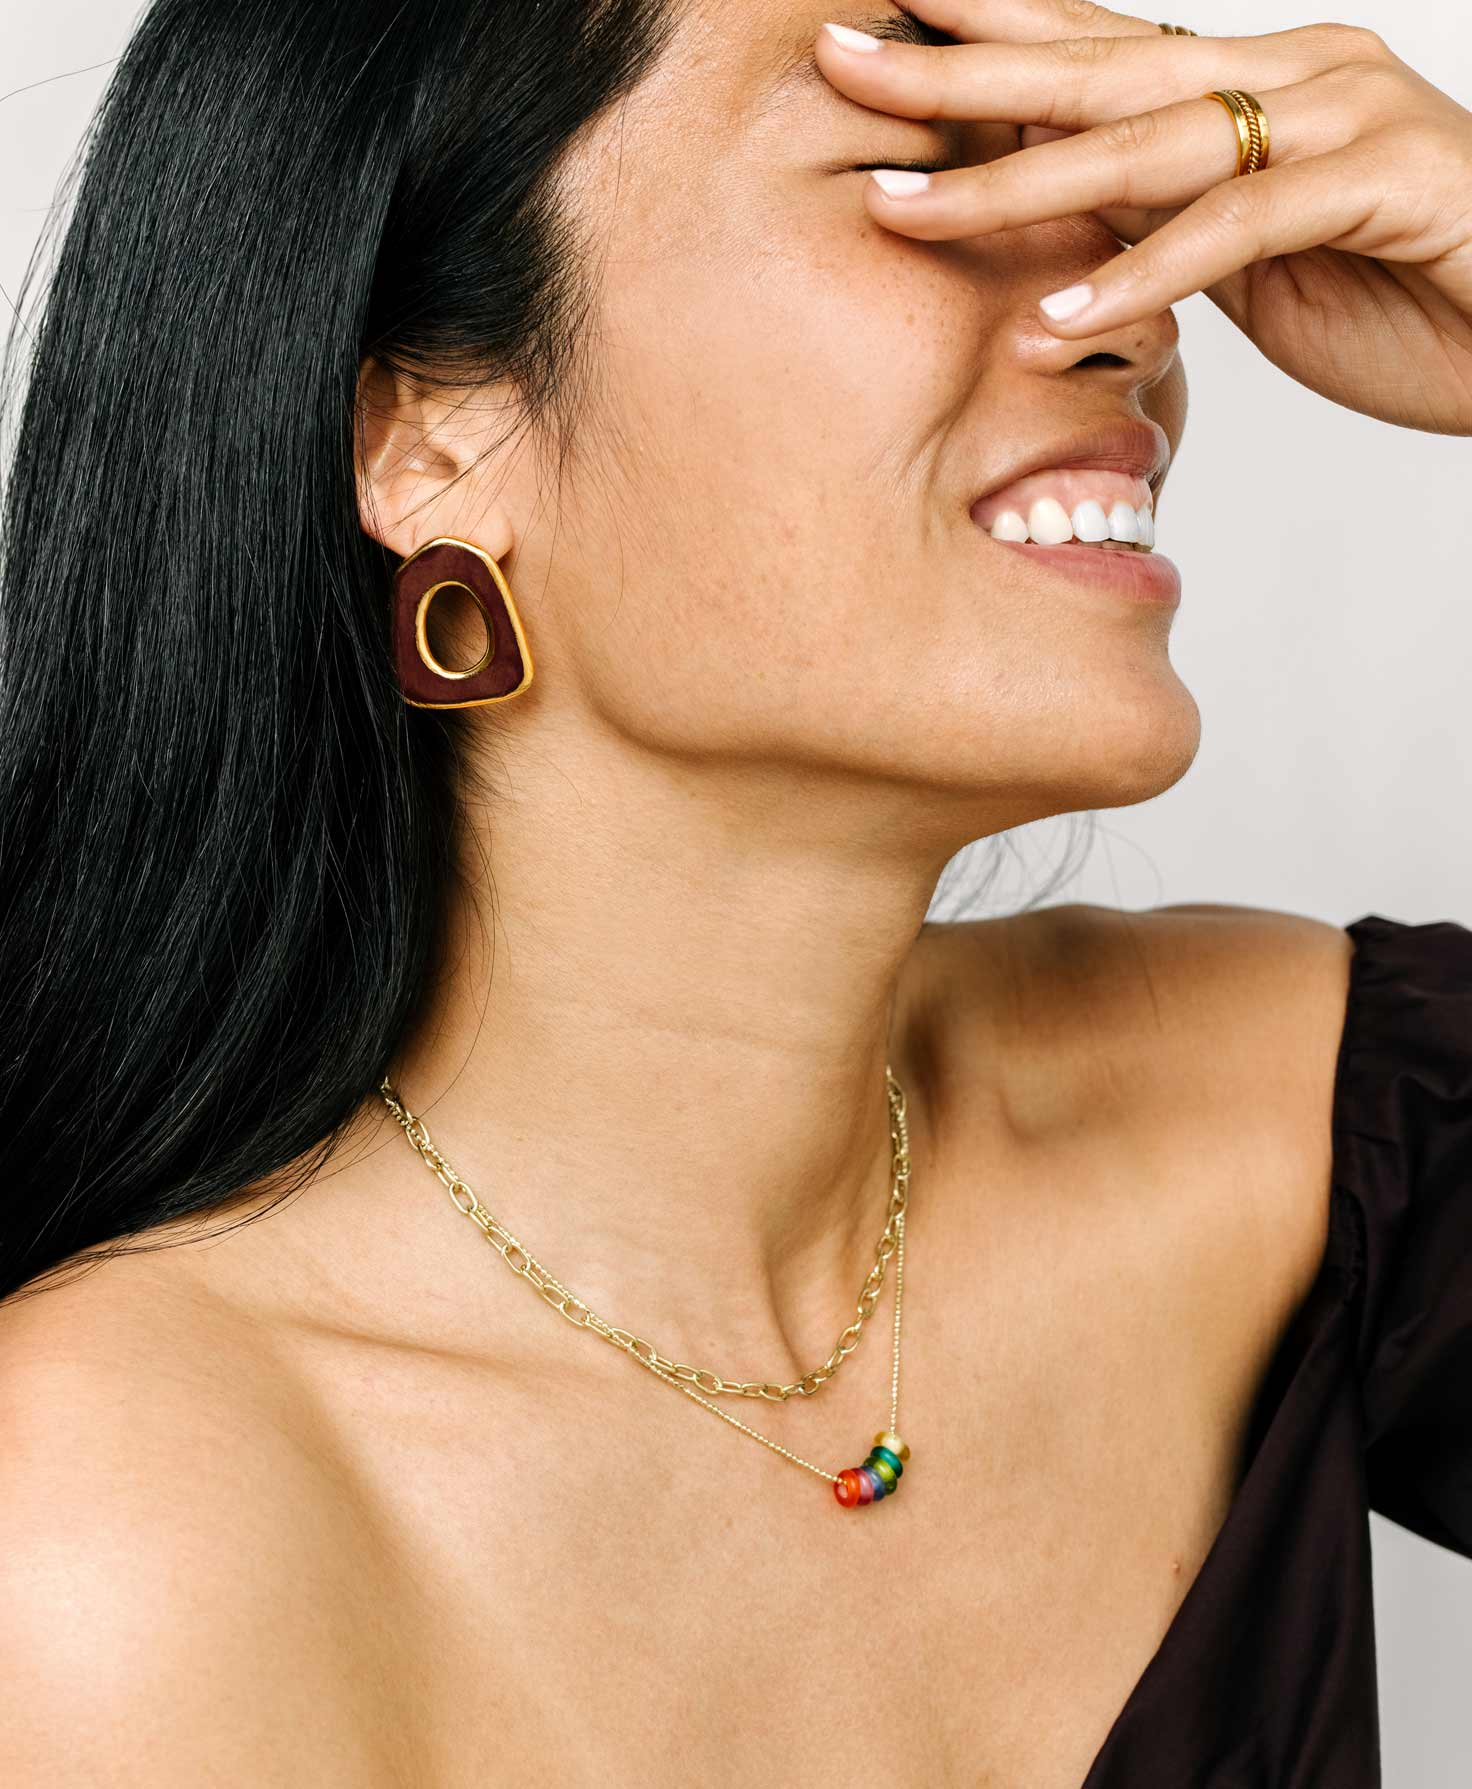 A model wears the Orb Necklace layered with the Infinity Necklace, another gold chain necklace. She finishes her look with the gold-rimmed Mesa Earrings.